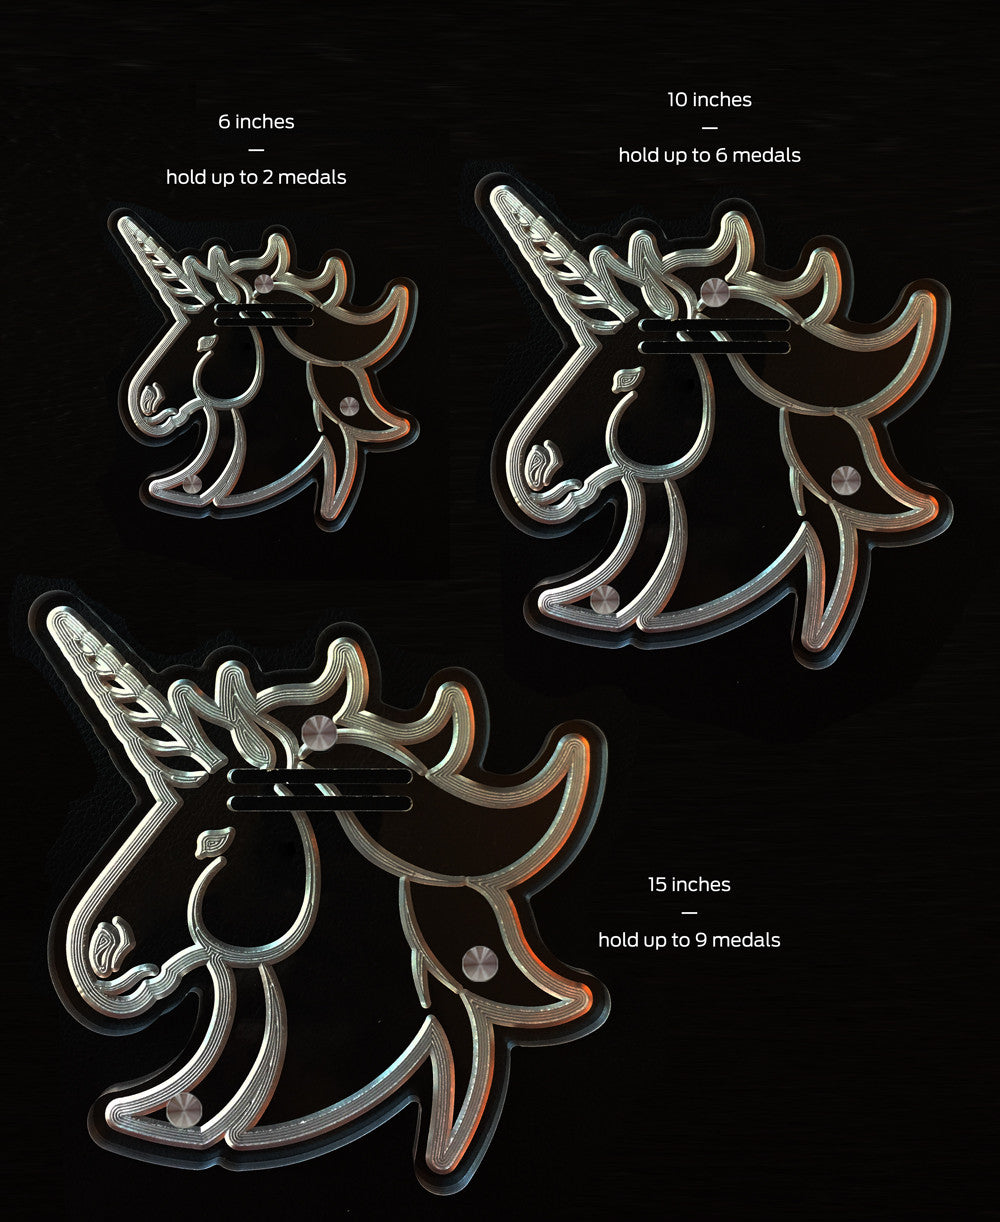 Unicorn Etched Acrylic Art 6 inch Medal Display (1-2 medals)